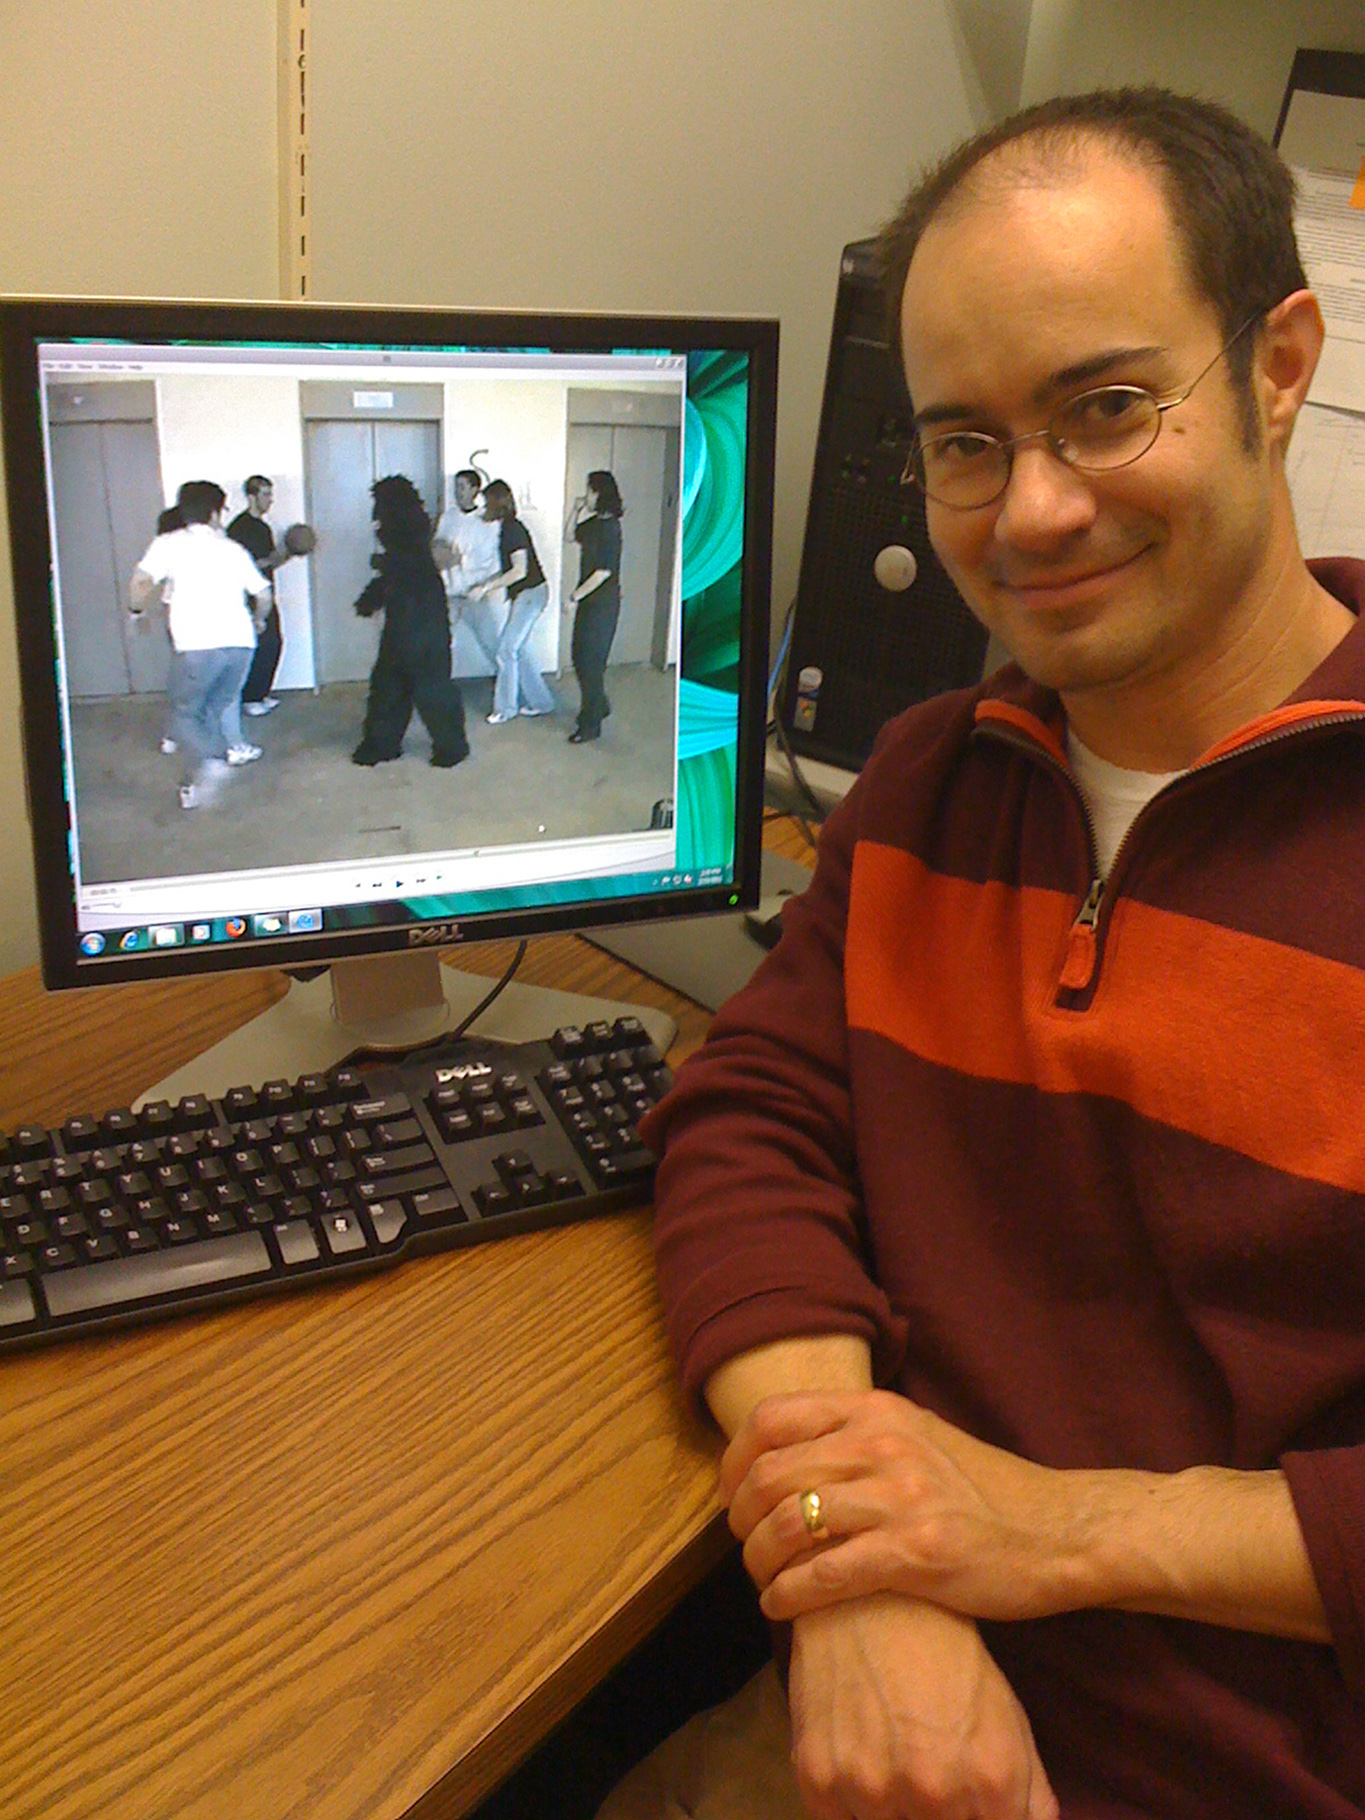 """University of Utah psychologist Jason Watson displays a famous video showing people passing a basketball while a person in a gorilla suit walks across the screen. When unsuspecting viewers were asked to count how many times the basketball is passed, more than 40 percent failed to see the person in the gorilla suit. Watson and his colleagues conducted new research expanding on earlier work by psychologists Christopher Chabris and Daniel Simons -- authors of the 2010 book """"The Invisible Gorilla"""" -- and showing that a better """"working memory capacity"""" explains why 58 percent of people to see the gorilla even if they are focusing on counting basketball passes."""